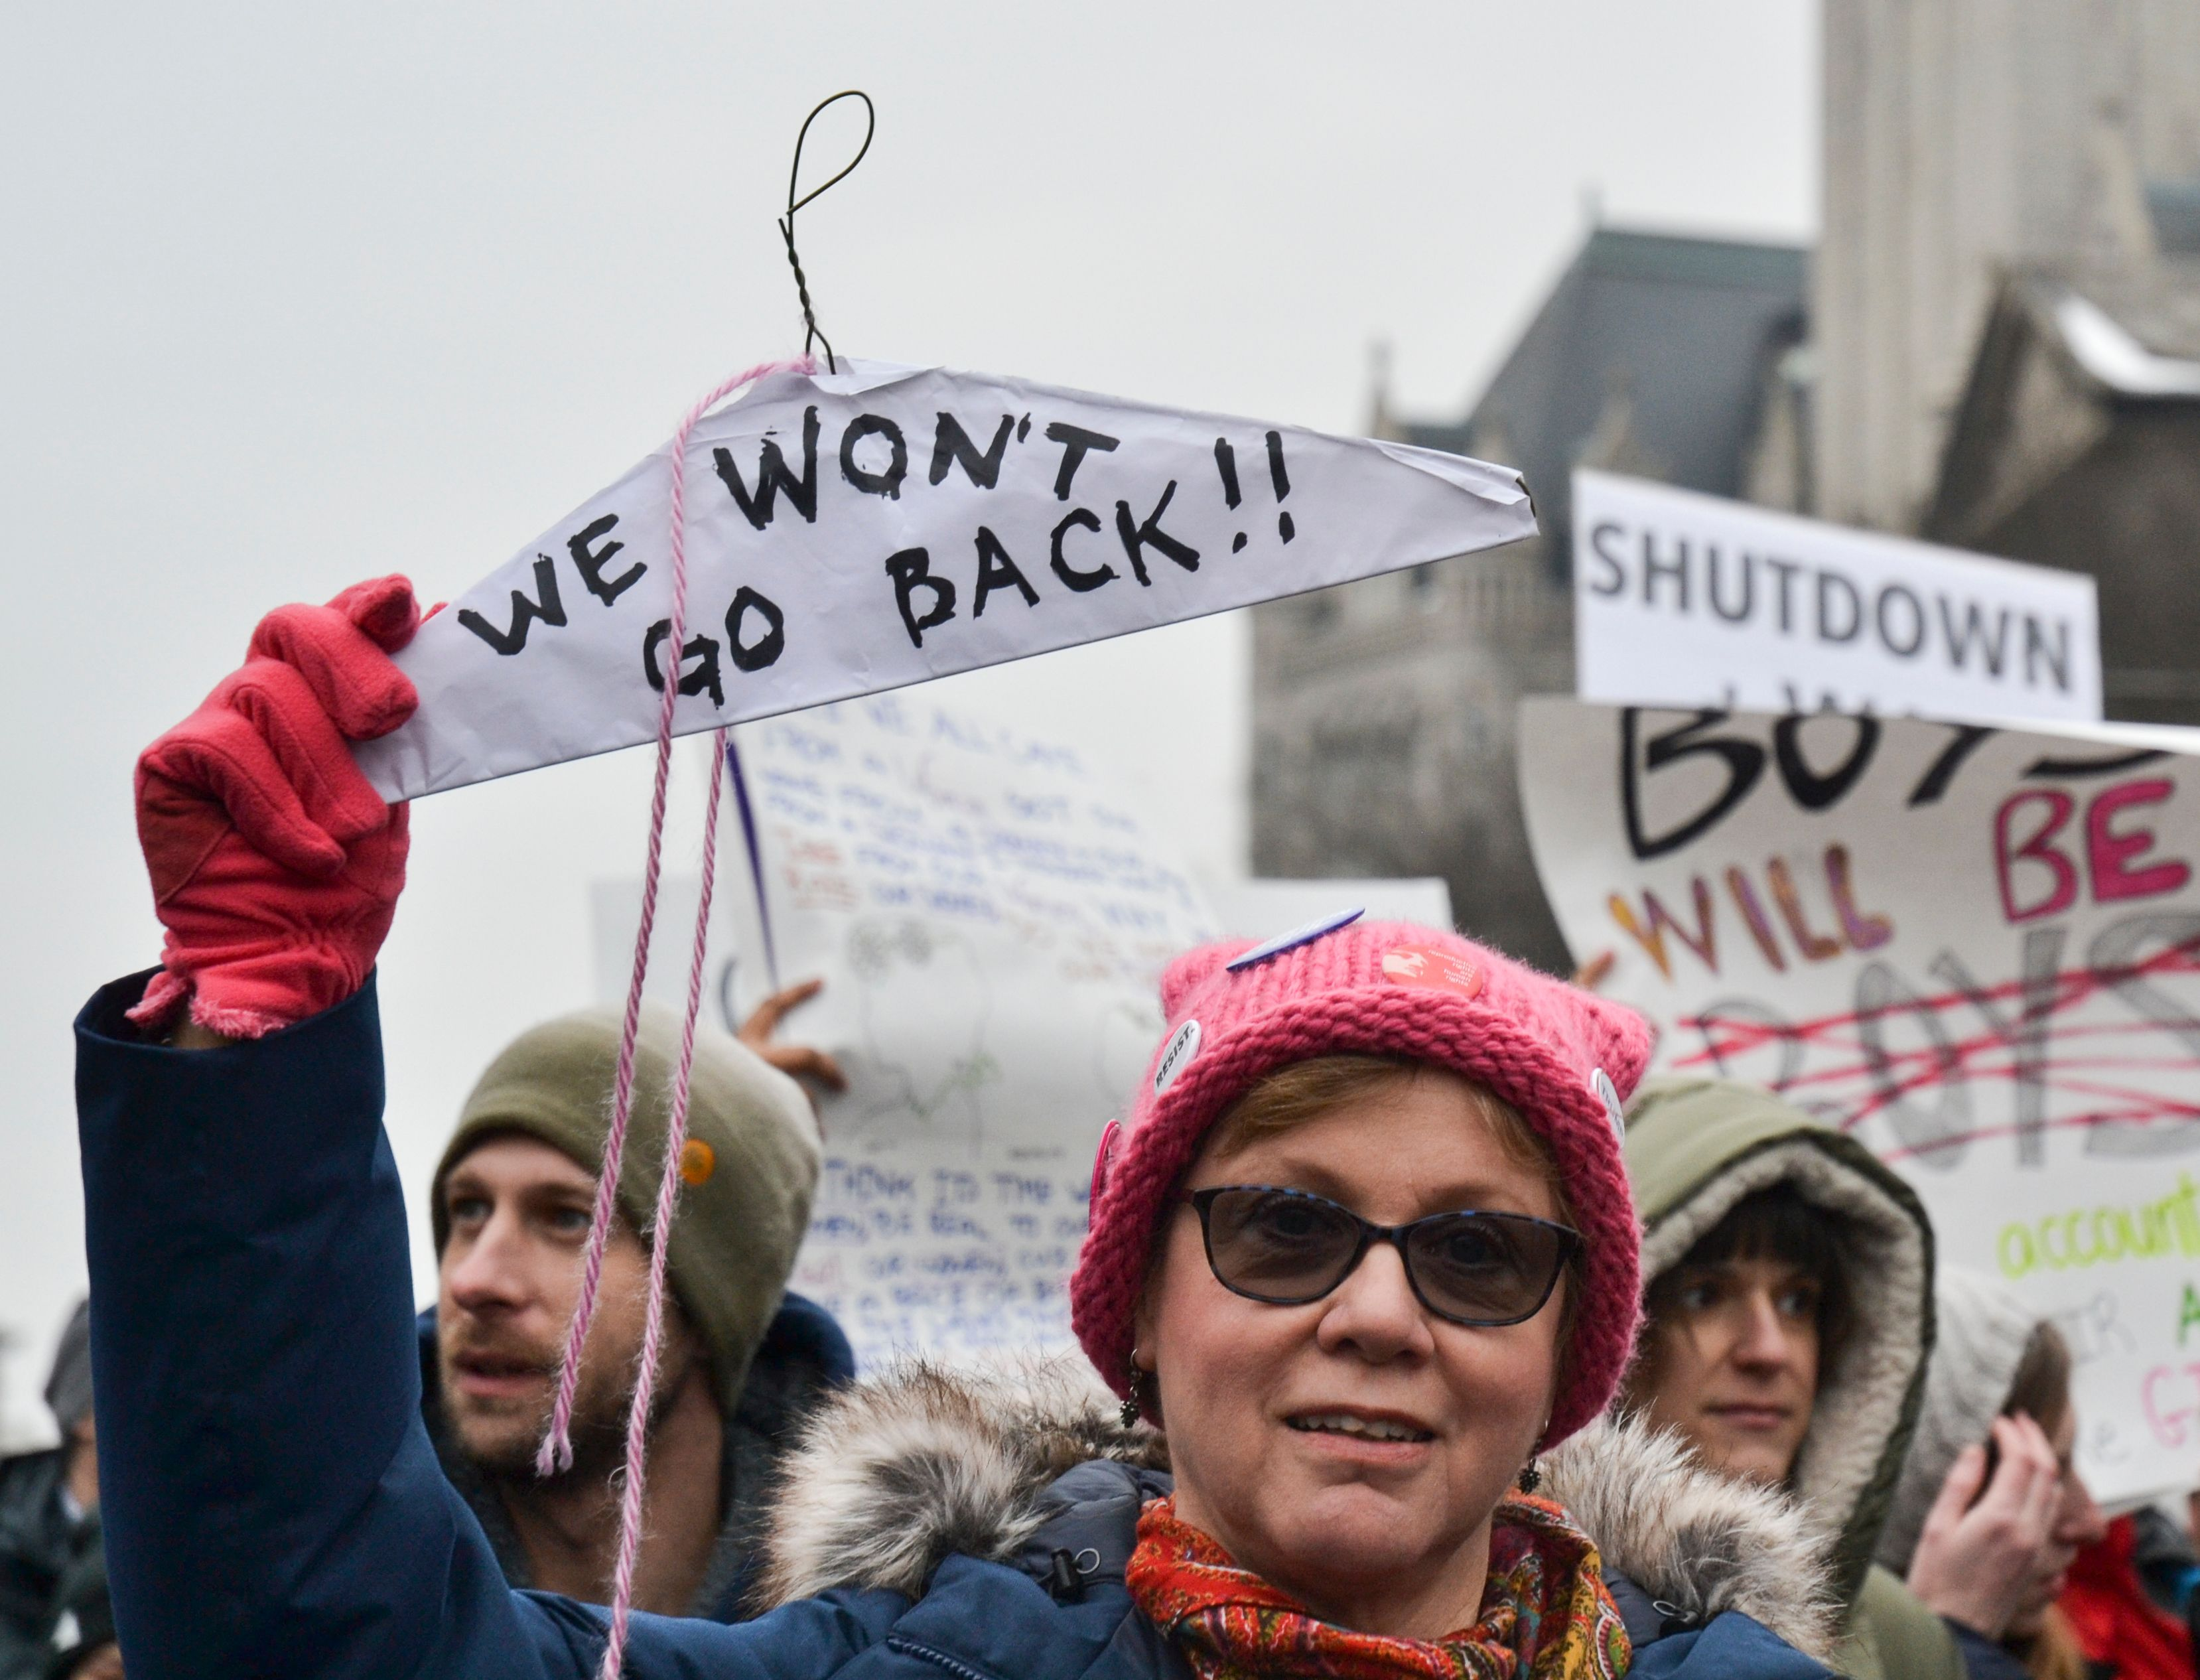 Protesters display their signs in front of the Trump Tower during the Women's March in Washington, DC January 19, 2019.